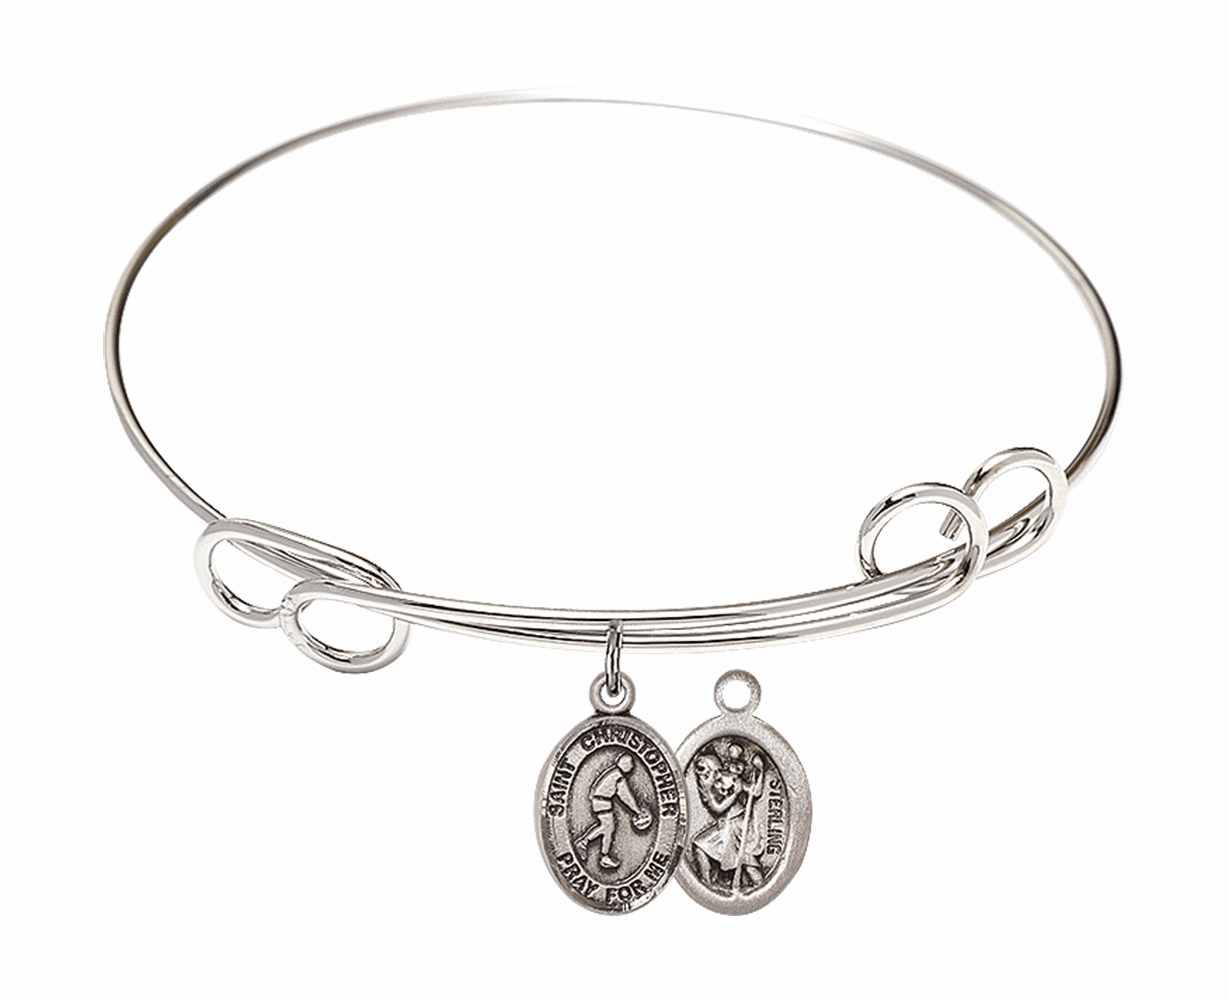 Round Loop St Christopher Basketball Bangle Charm Bracelet by Bliss